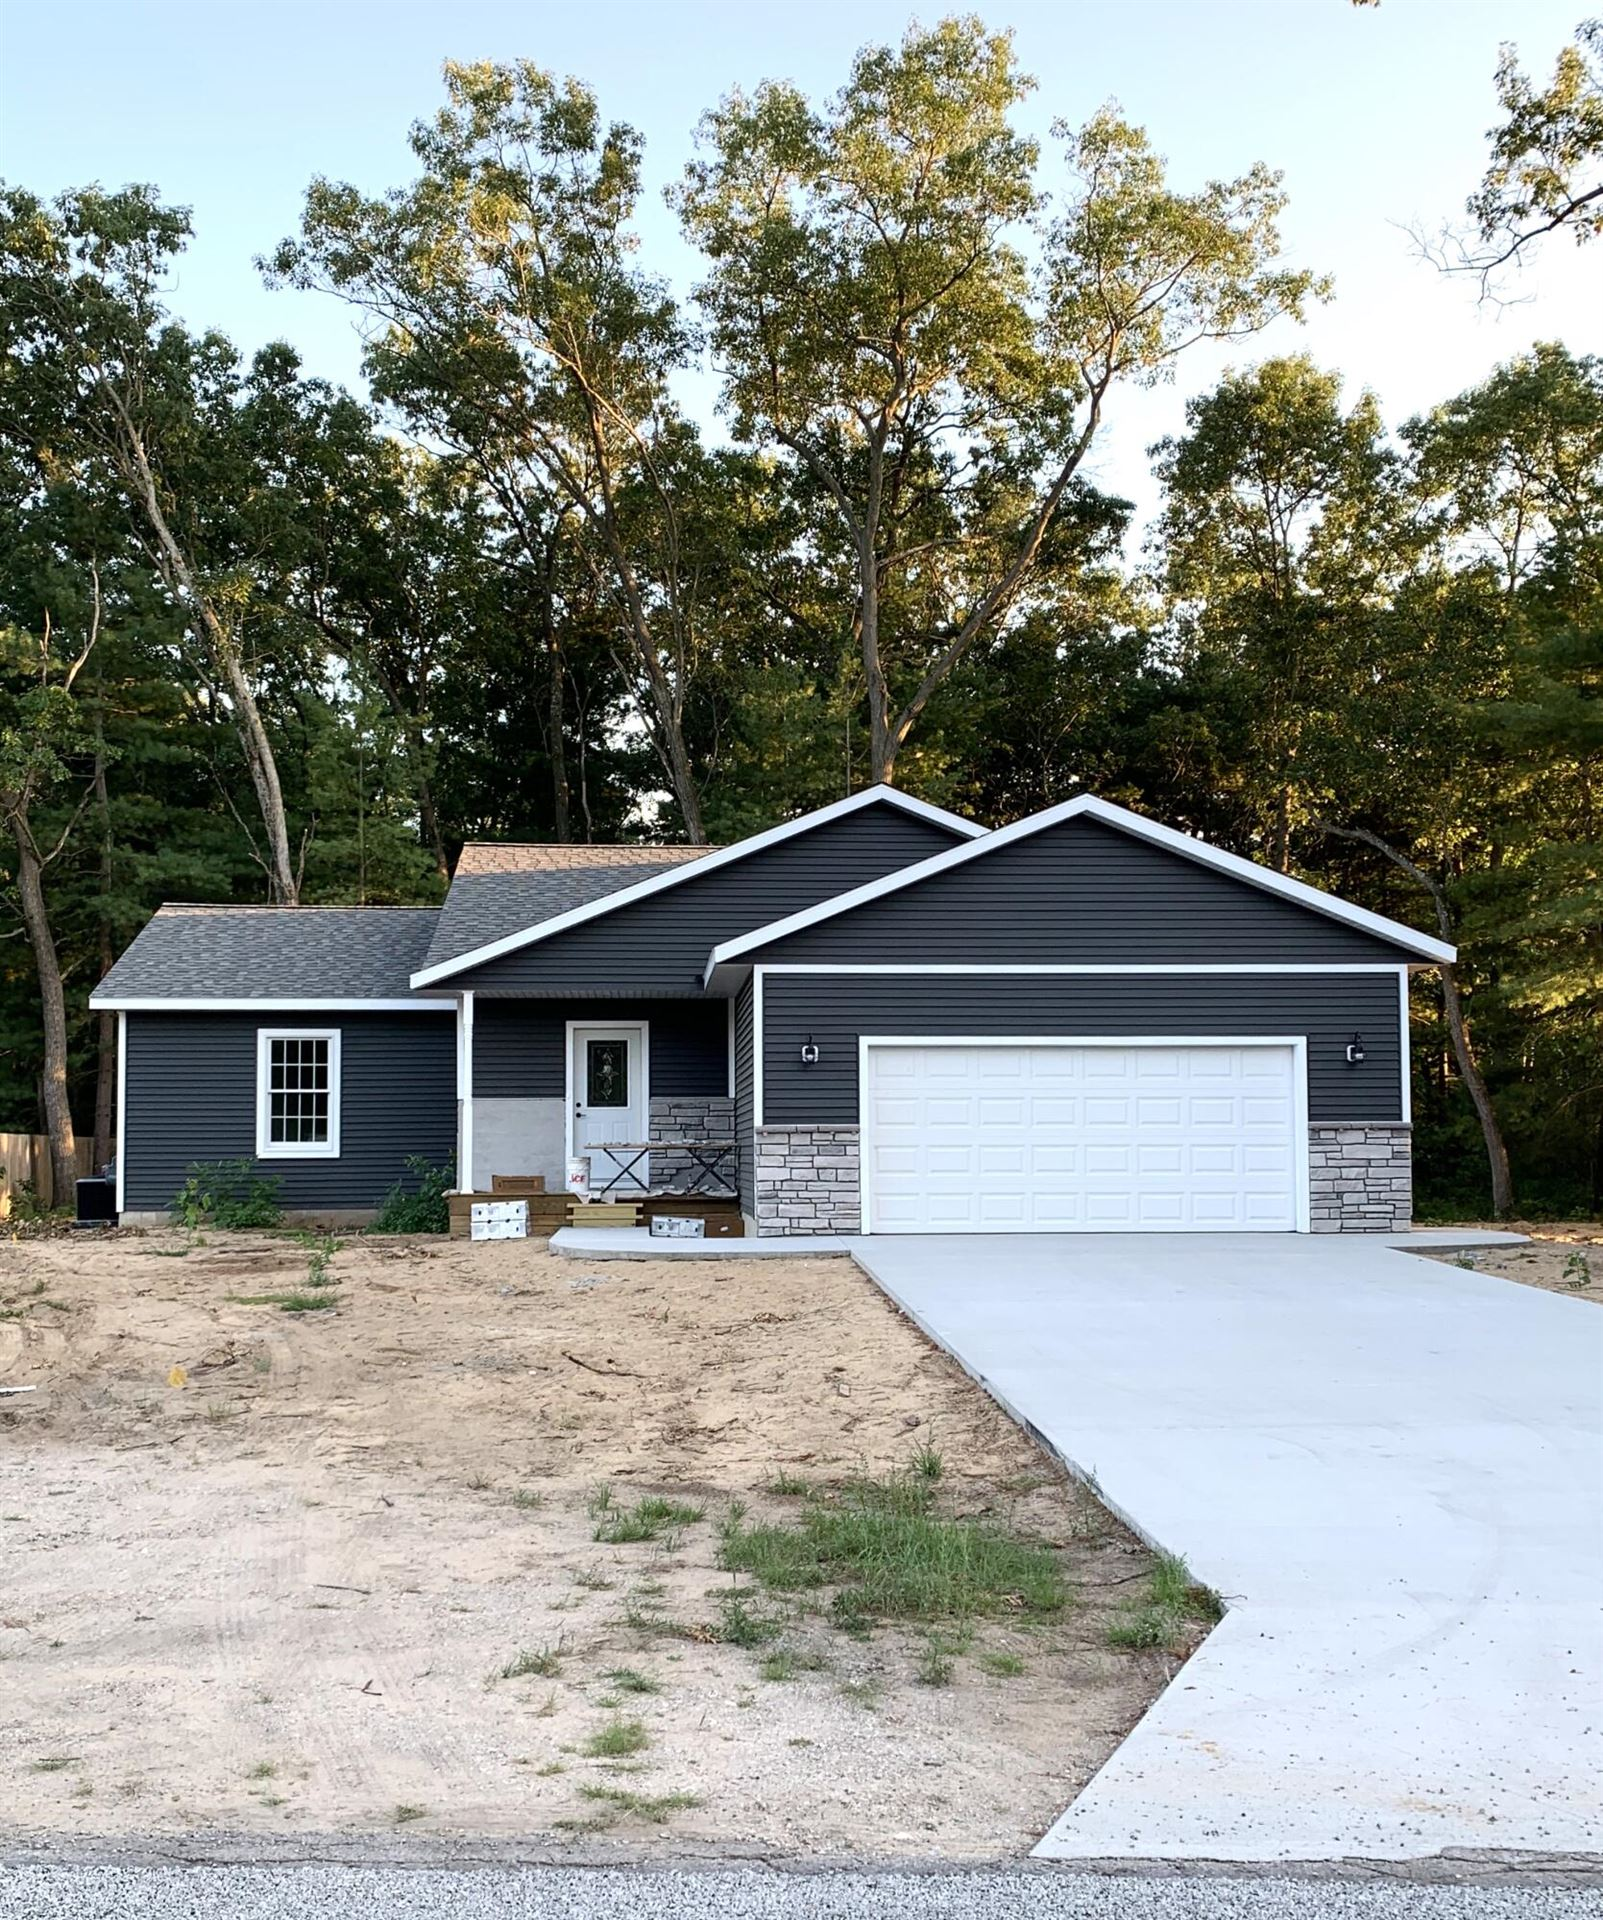 2383 Windy Ridge Drive, Muskegon, MI 49442 - MLS#: 21013327